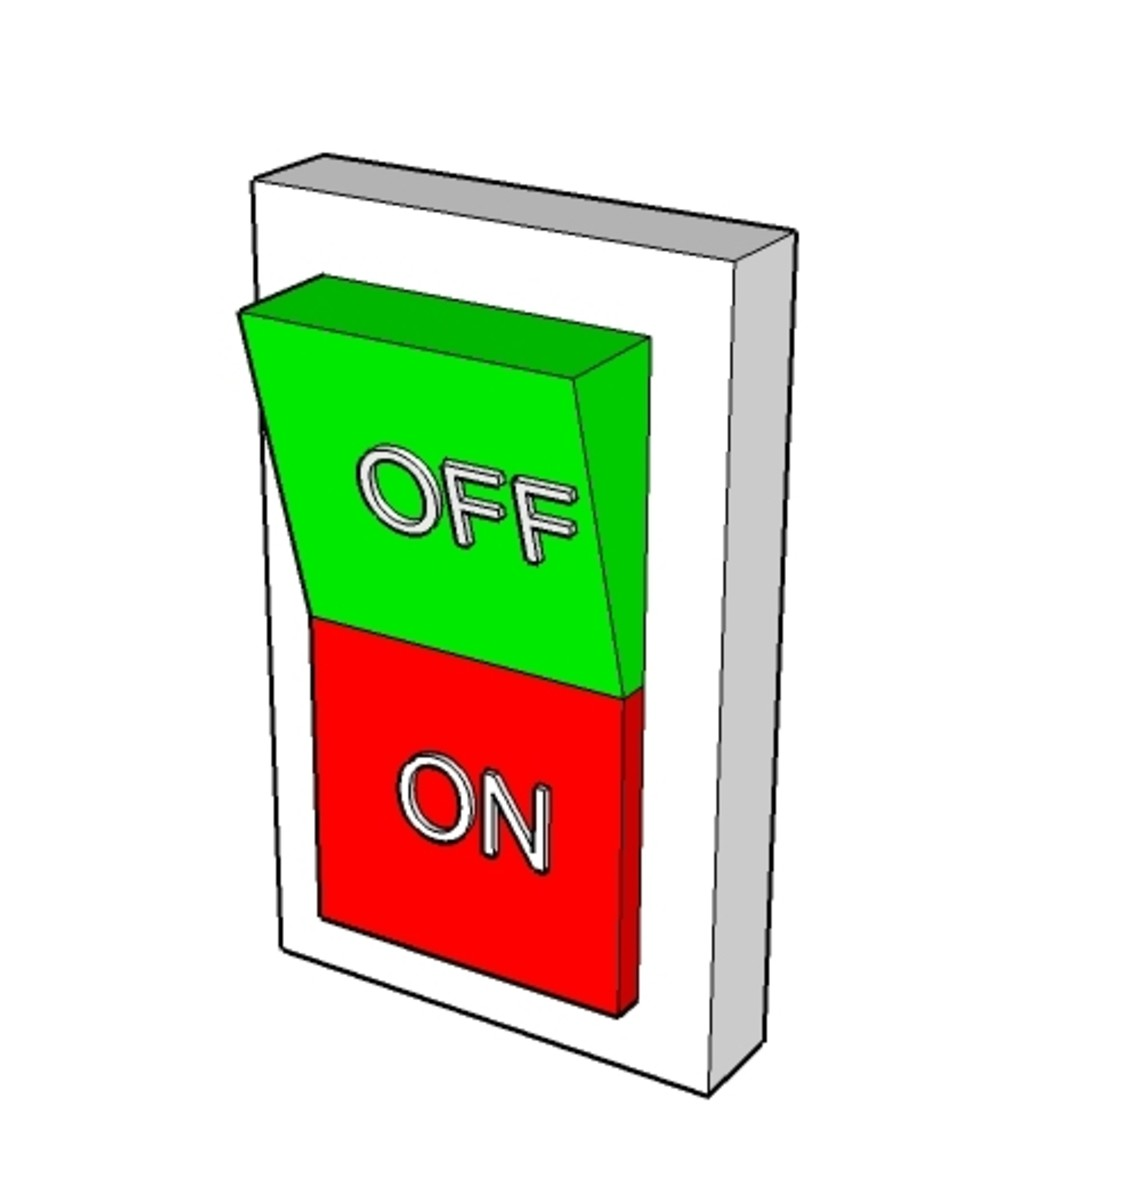 A 3D image of a switch designed in Google Sketchup